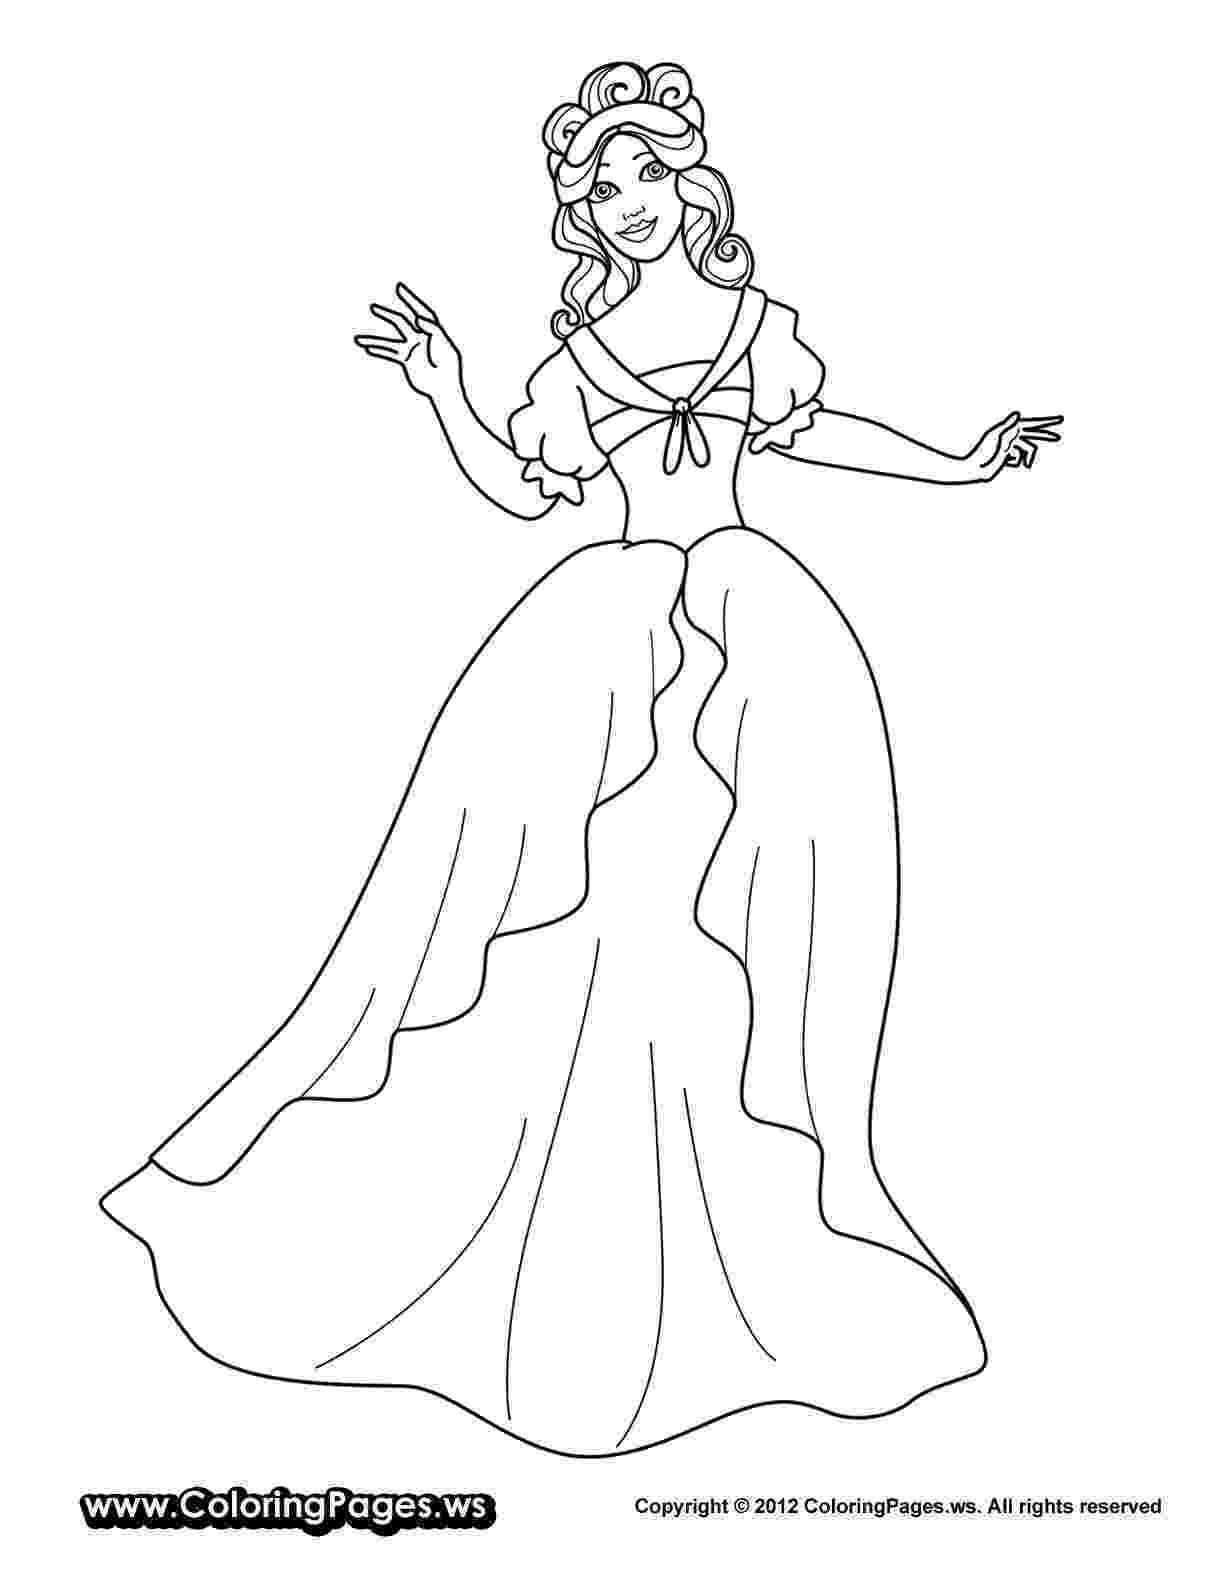 colouring pages of princesses and fairies coloring for adults kleuren voor volwassenen fairy and pages colouring of fairies princesses